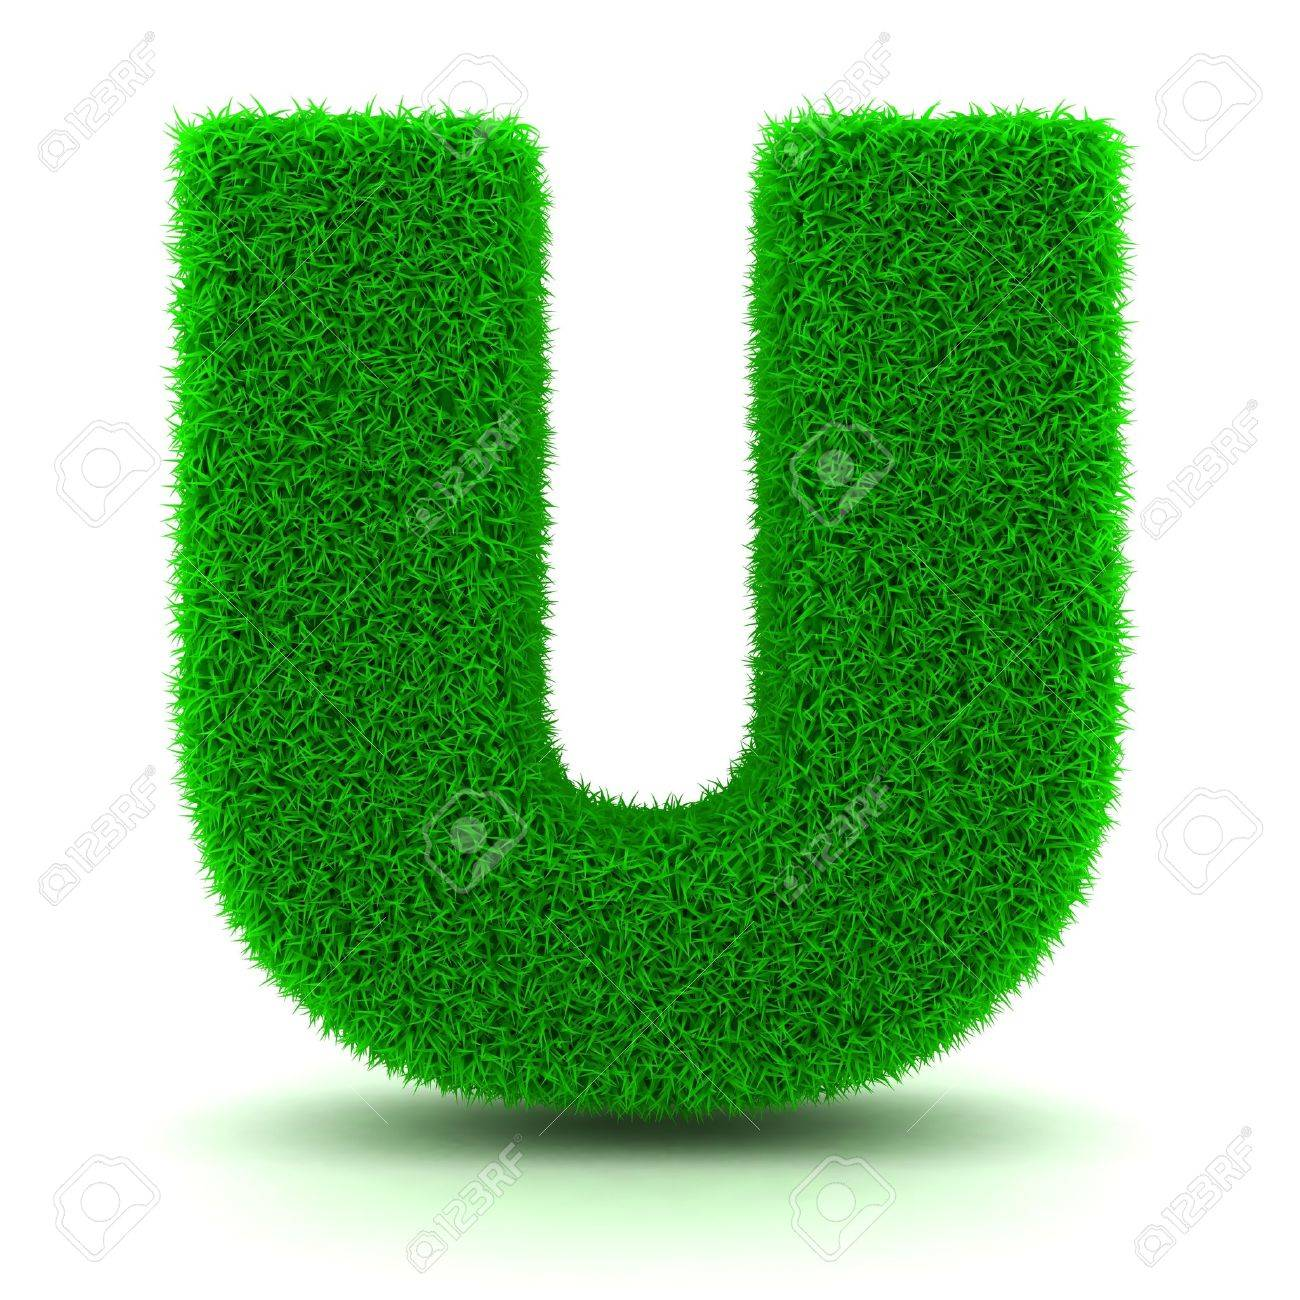 3D Green Grass Letter on White Background Stock Photo - 11875209